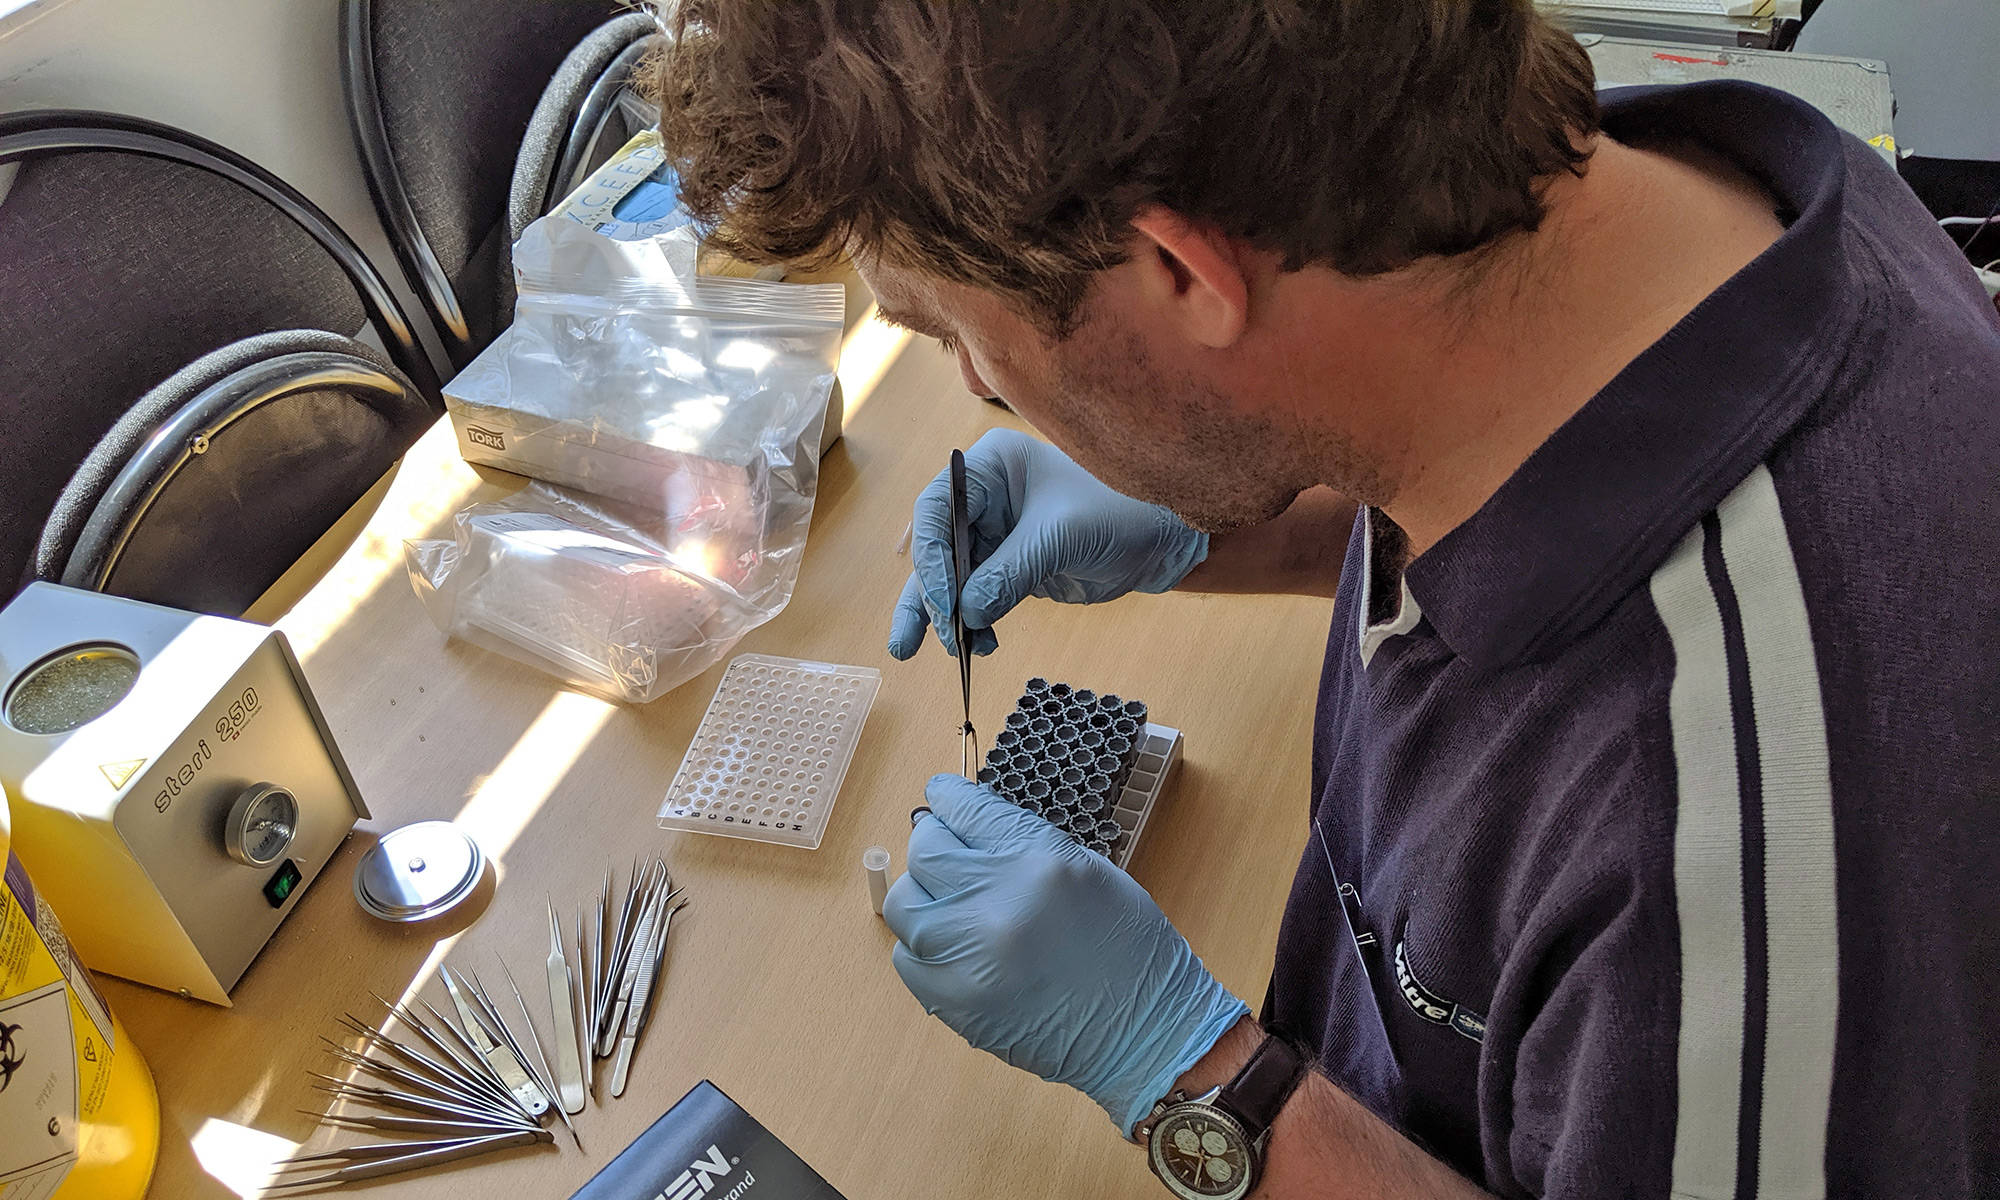 A man wearing blue gloves sits hunched over a tray of tubes as he uses a pair of tweezers to place small pieces of insects into each one